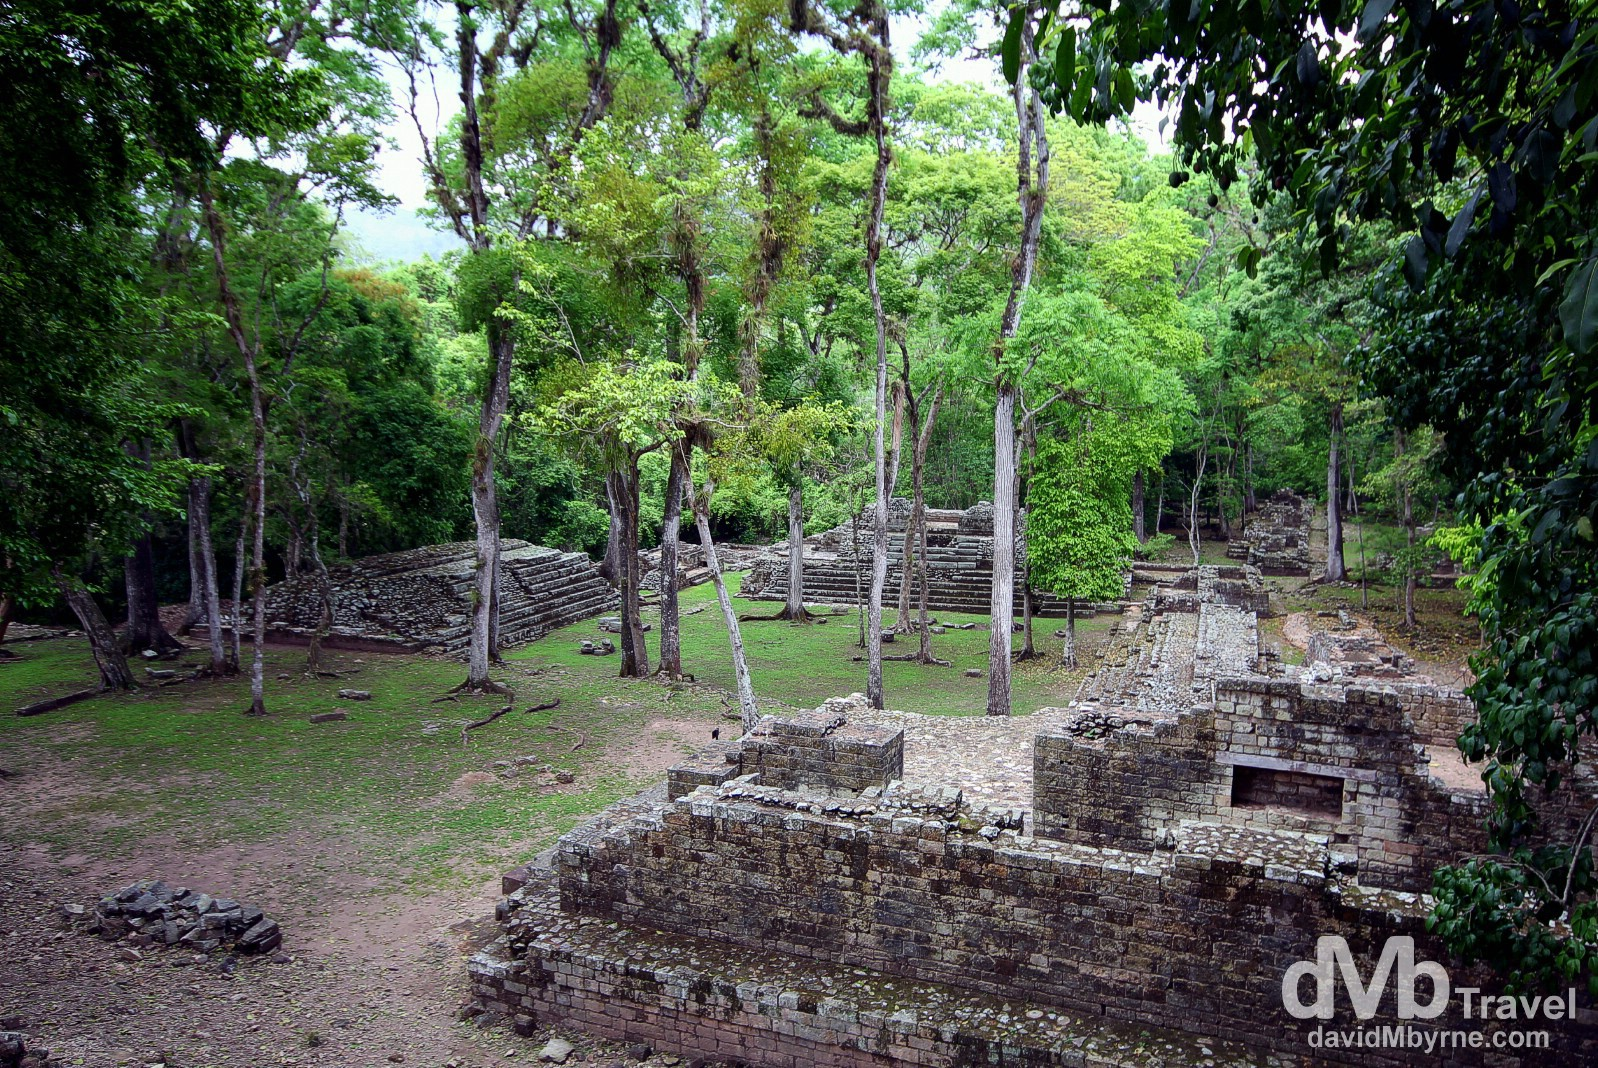 The Cemetery section of the Copan Architectural Site, western Honduras. June 7th 2013.